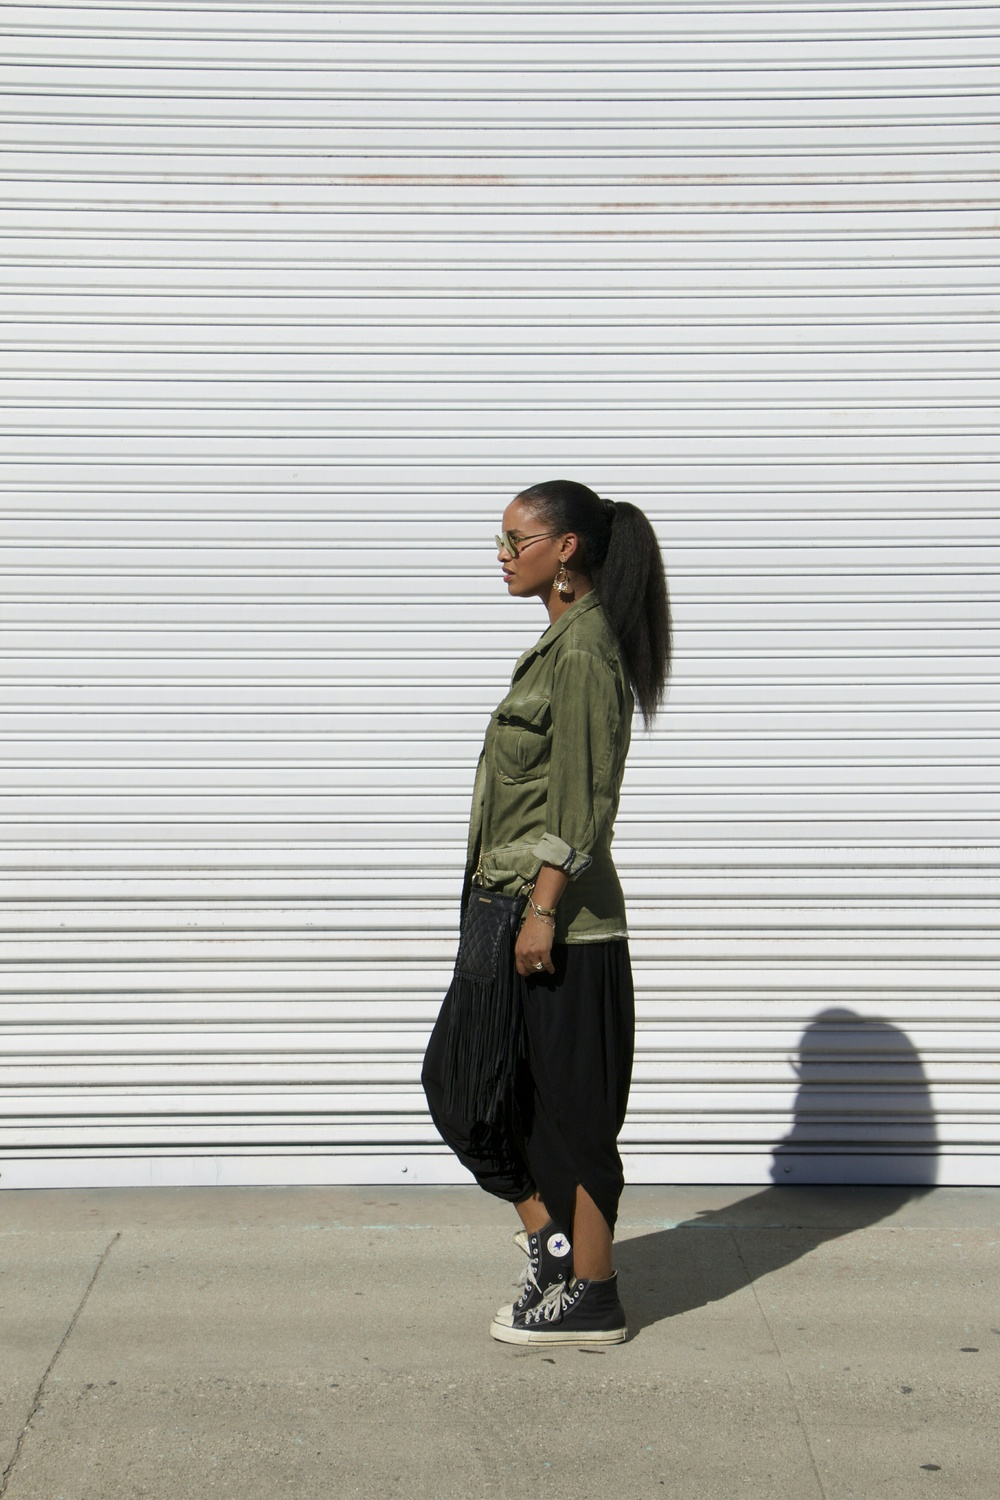 Joy Bryant. Actress. Model. Co-Creator of the lifestyle/ apparel brand, Basic Terrain.              Photo Credit: Kristen Cleary